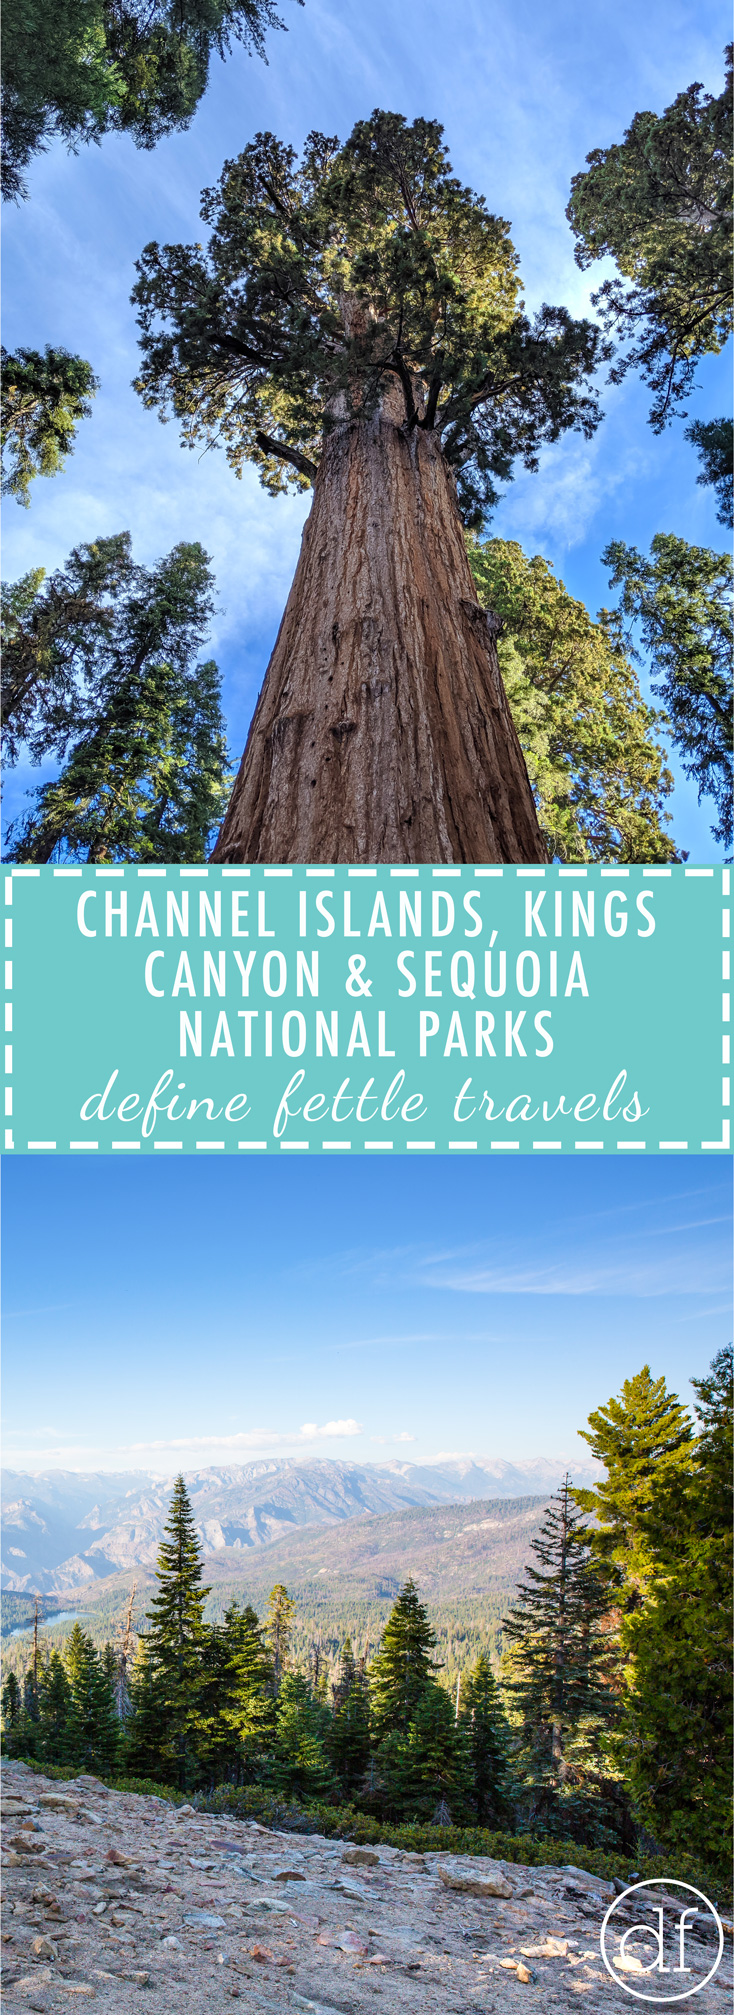 Kings Canyon National Park, Sequoia National Park, Channel Islands National Park, Southern California National Parks, CA National Parks, California, National Park Trip,